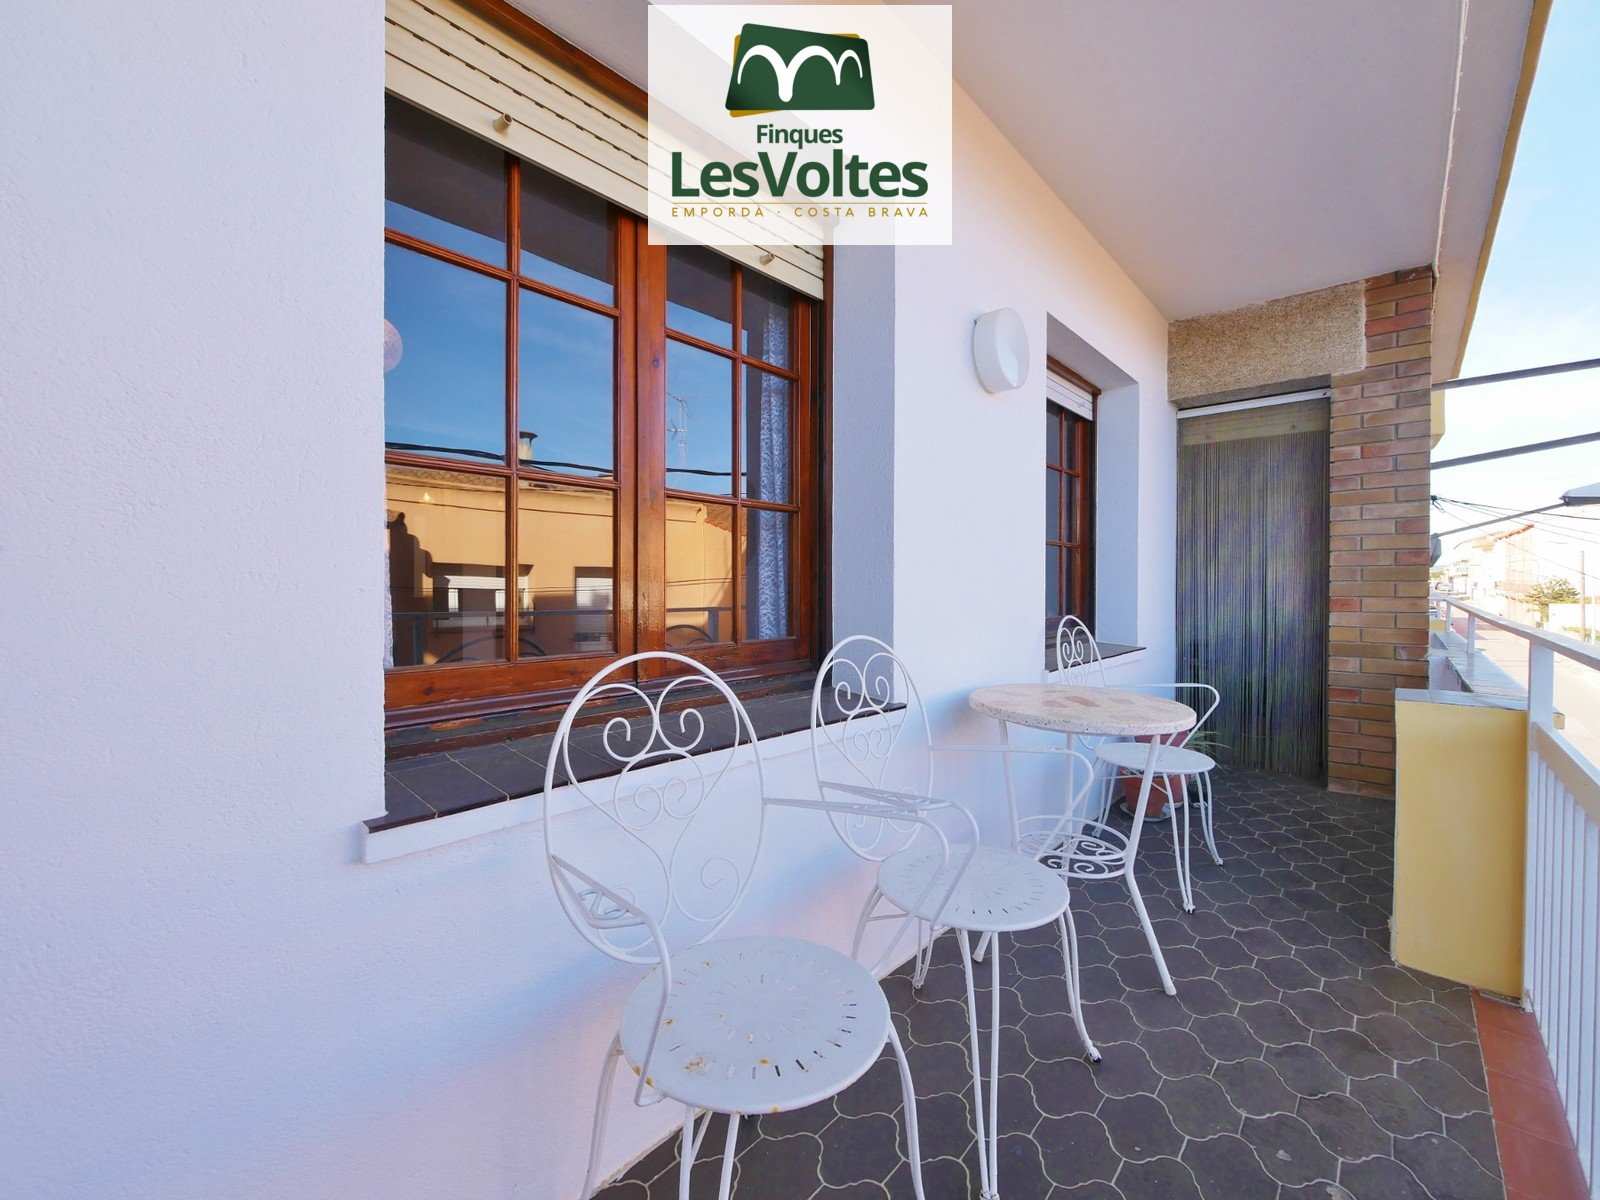 4 bedroom apartment with terrace for sale in Palafrugell. Located near the center. optional parking